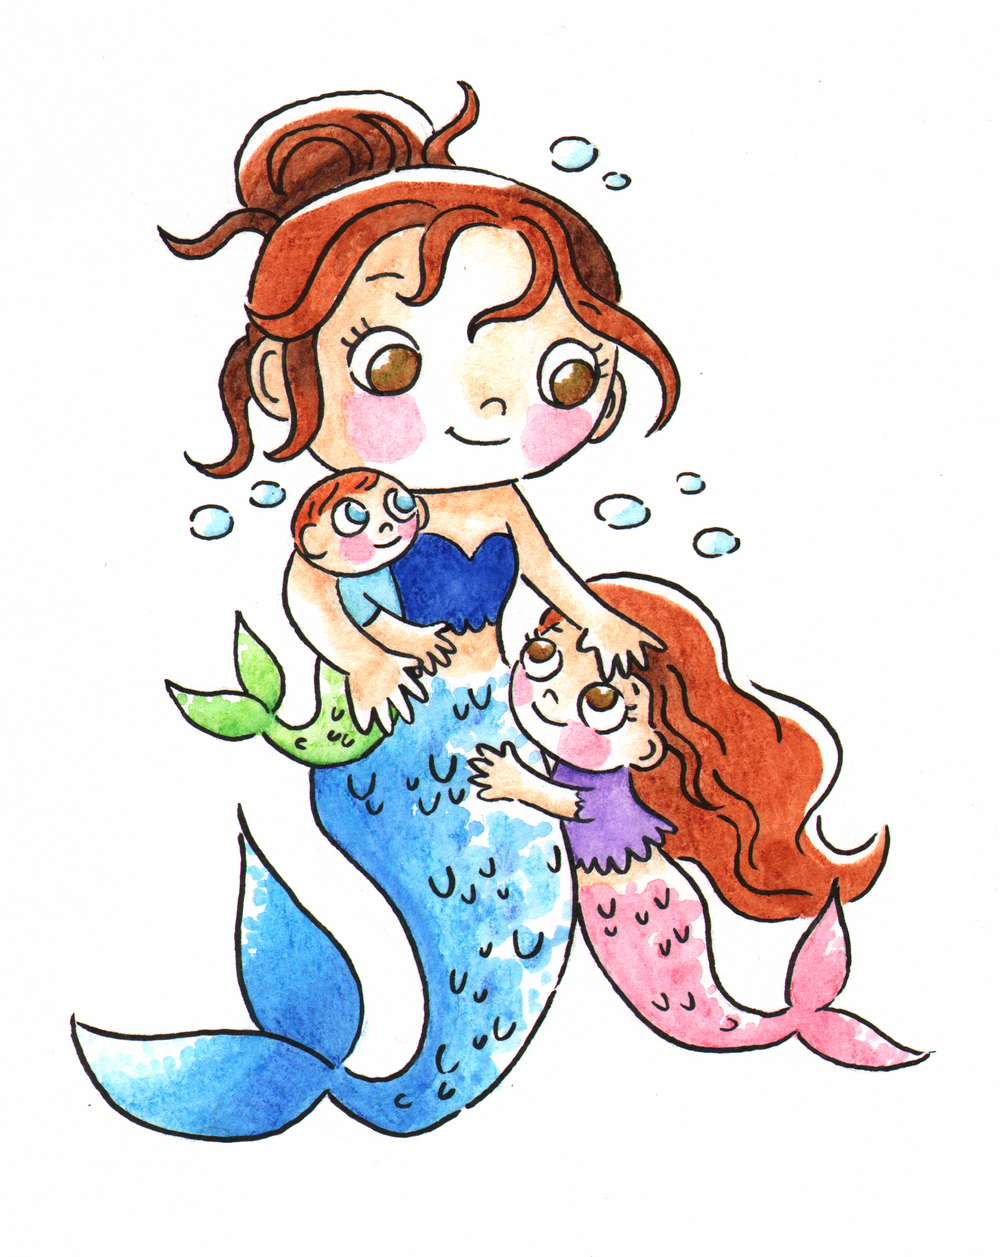 Mer-mom   This mer-mom is a self portrait of me and my two littles as mermaids. Isn't is cute?. Watercolor pencils, 2018.